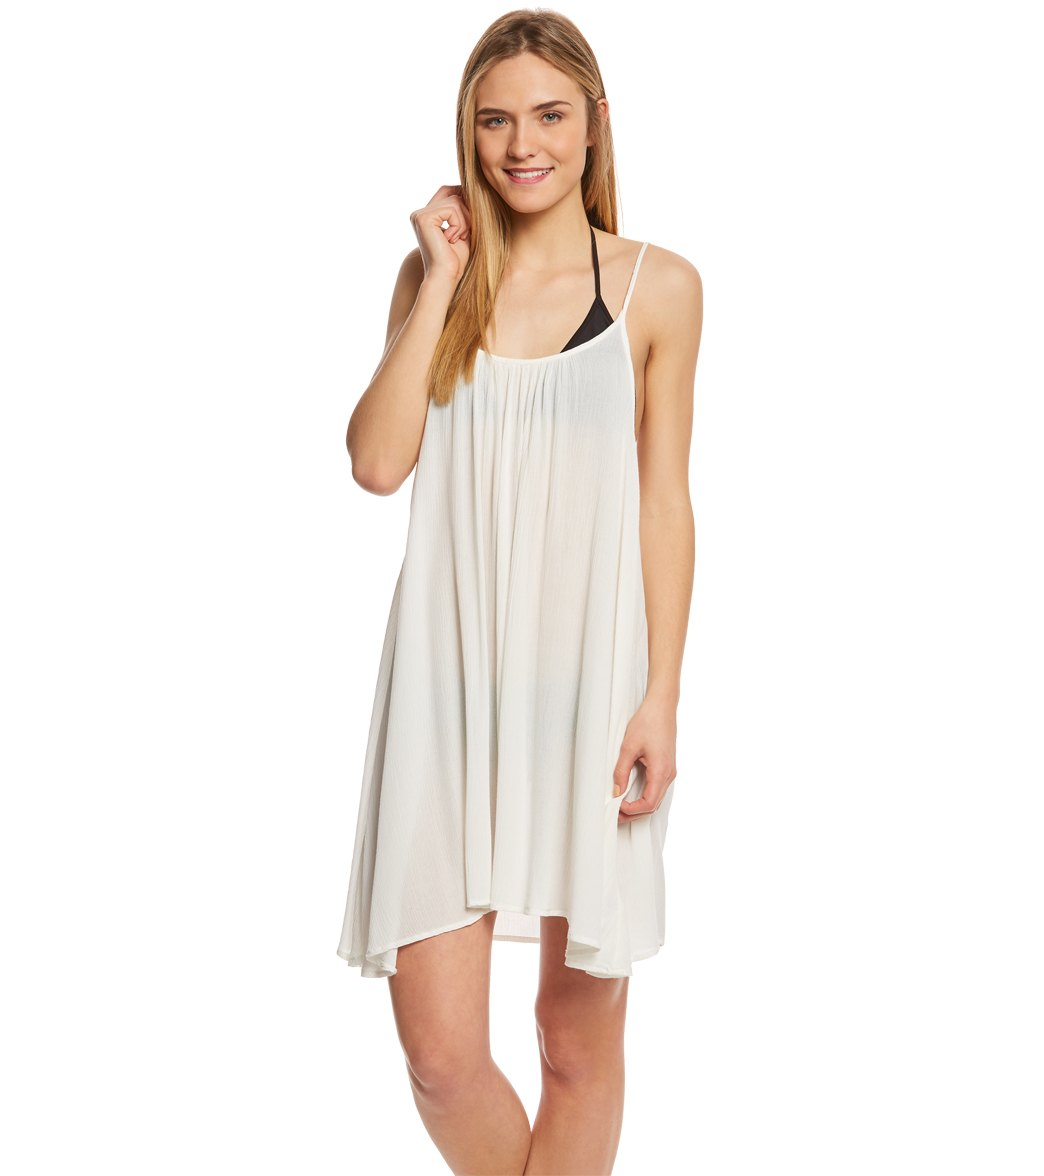 aae58fa8d4 Roxy Windy Fly Away Cover Up Dress at SwimOutlet.com